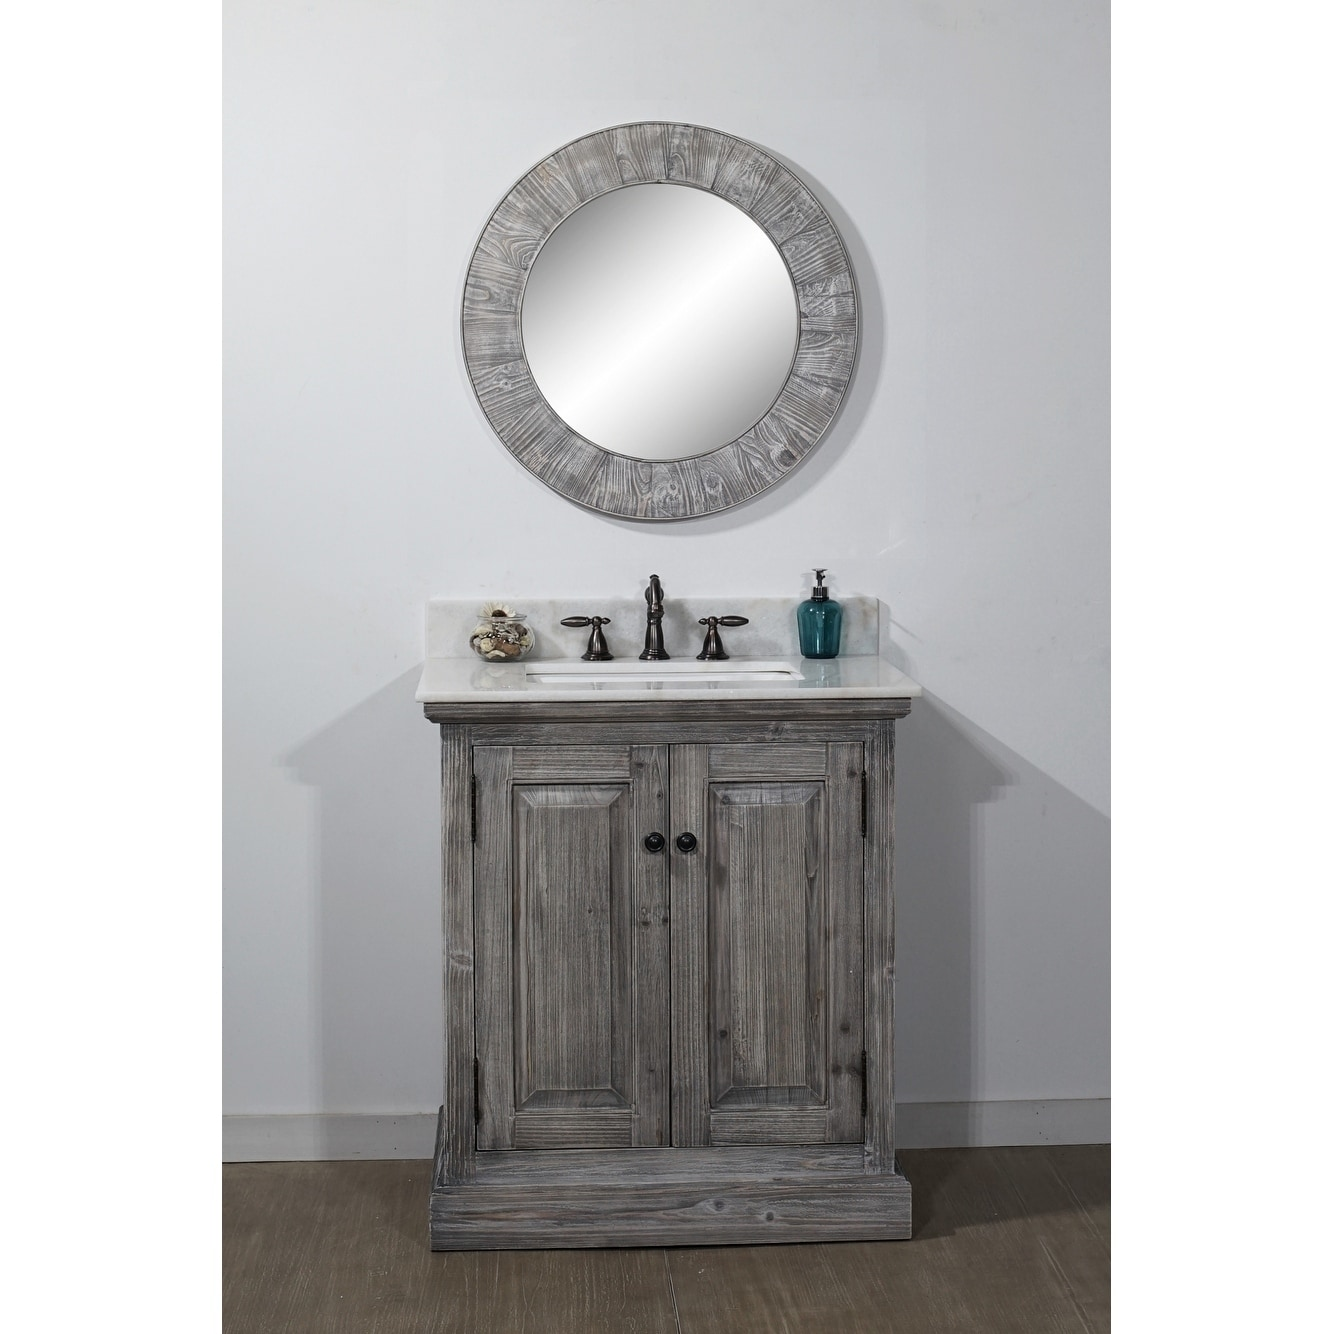 Shop Rustic Style 31 Inch Bathroom Vanity In Grey Driftwood Finish With Arctic Peart Quartz Top No Faucet Overstock 18185190